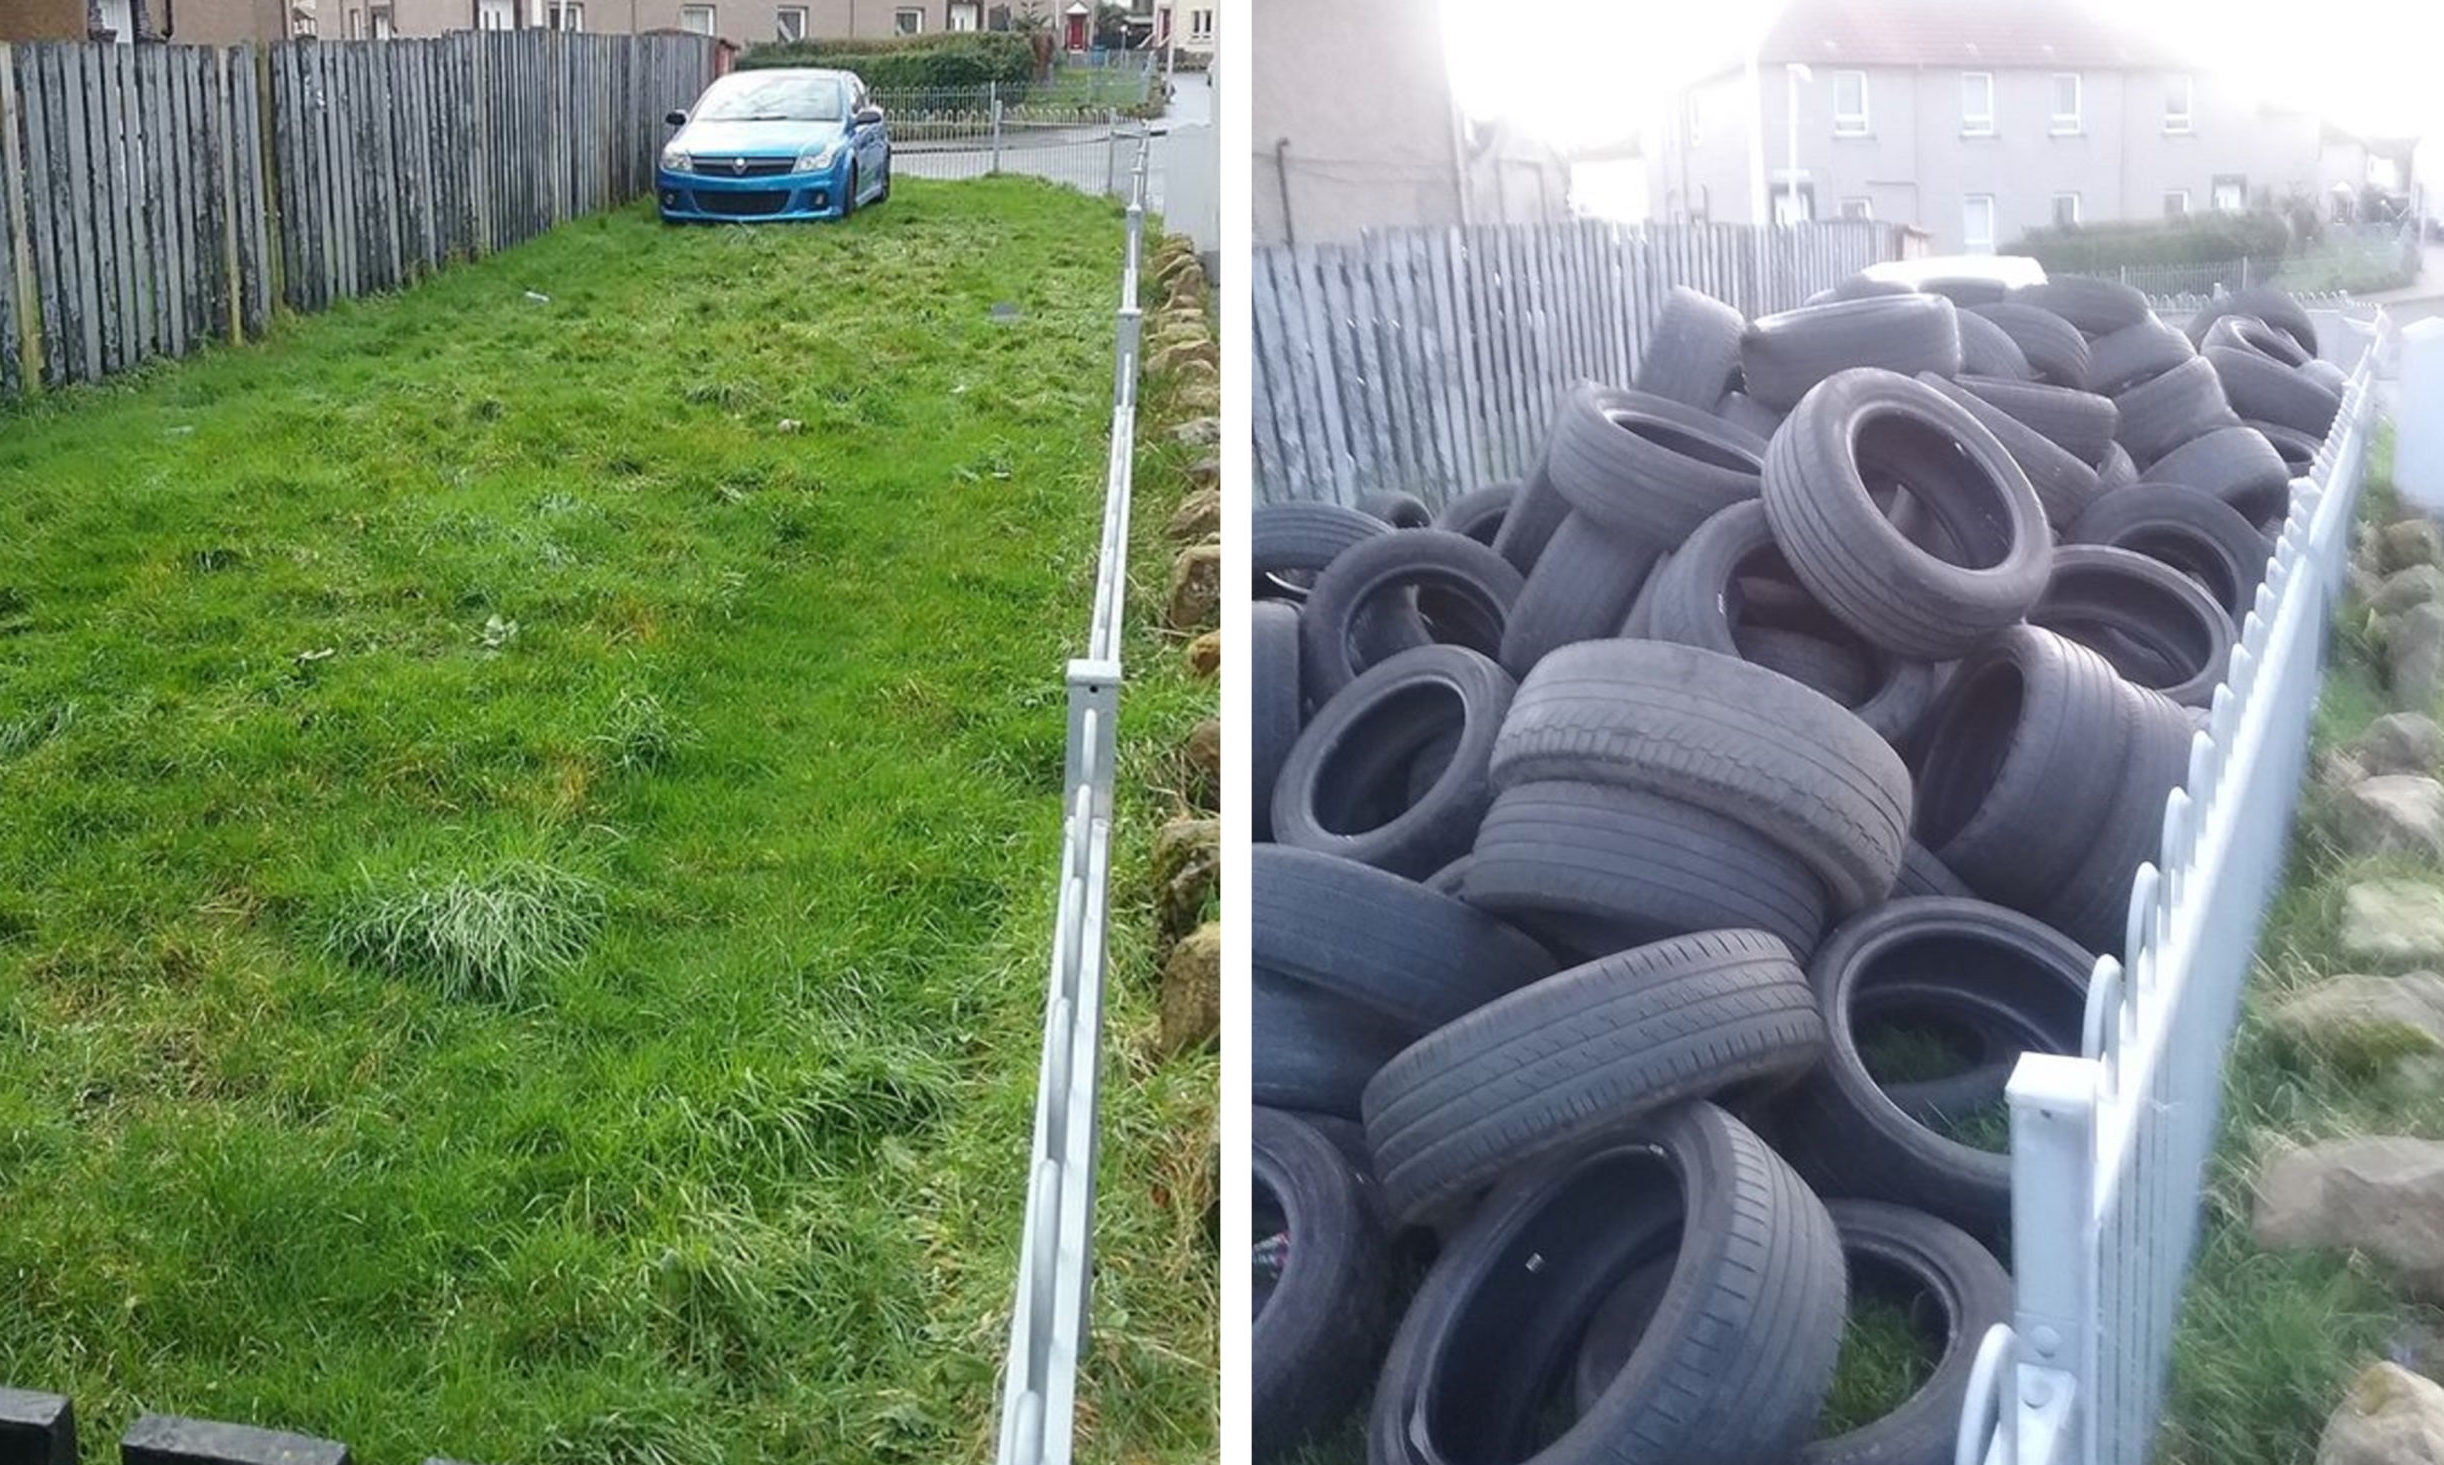 After and before photos of the fly-tipping.